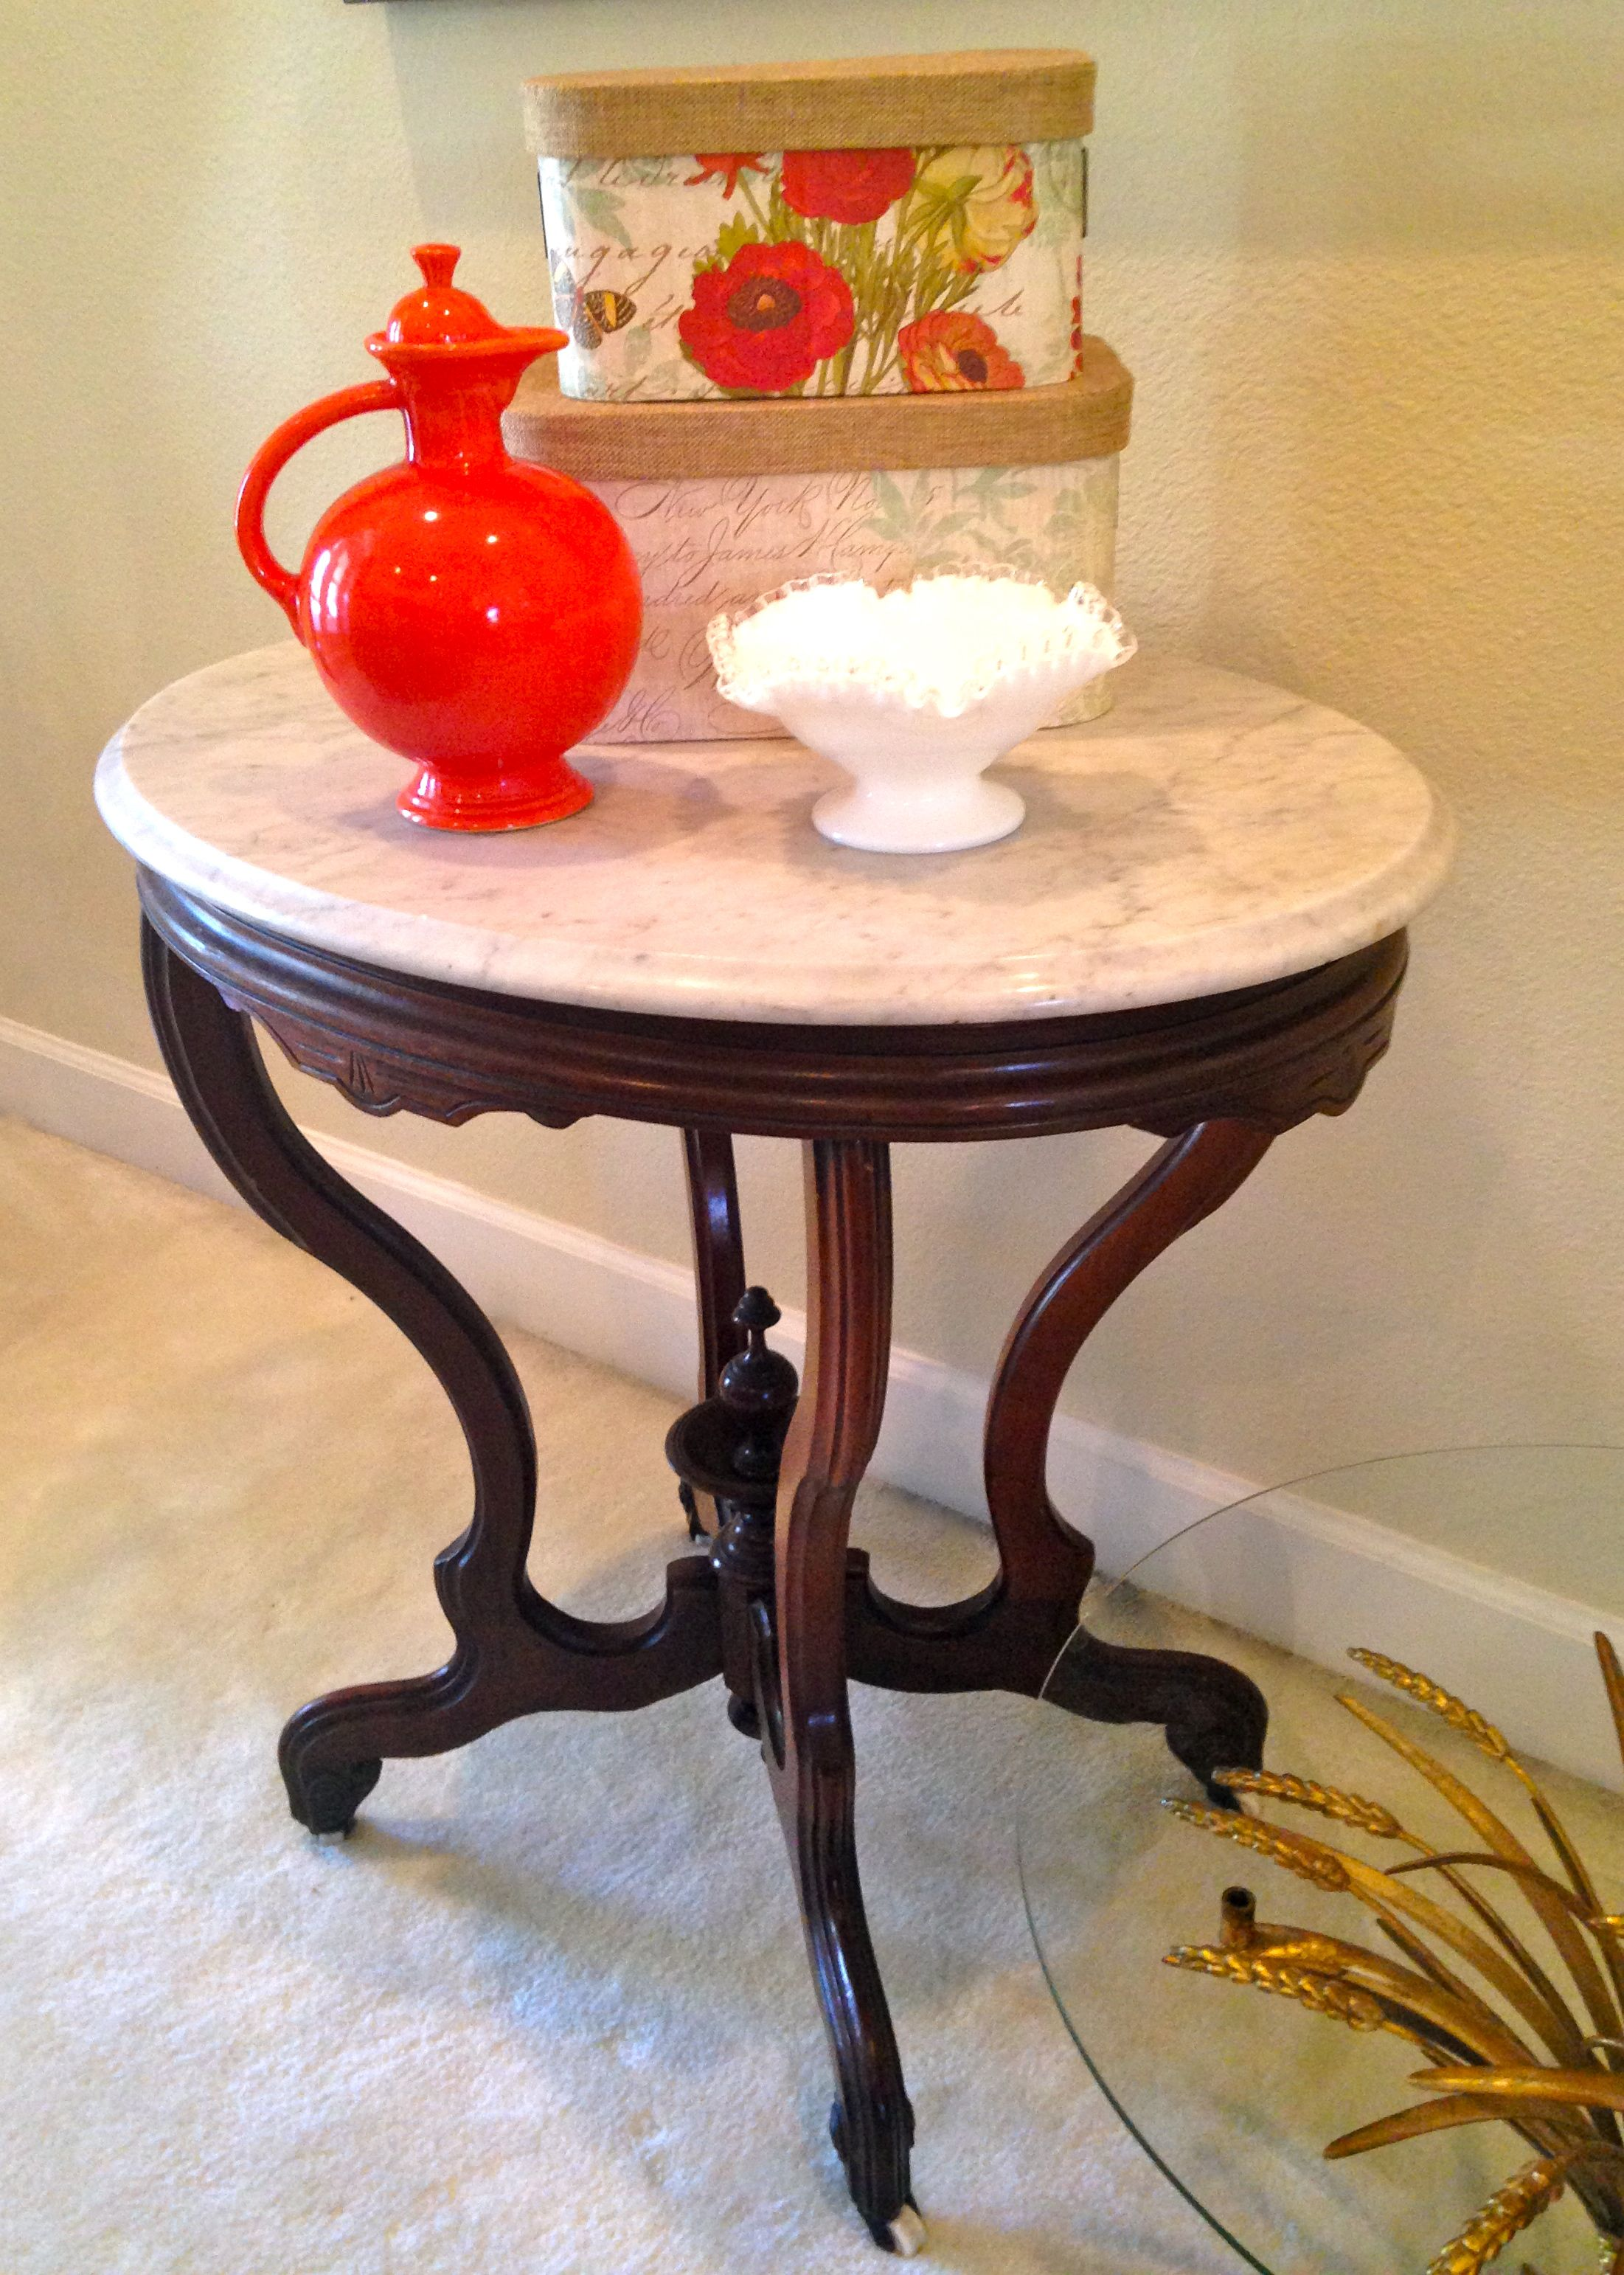 Marble Top Table With Ceramic Wheels